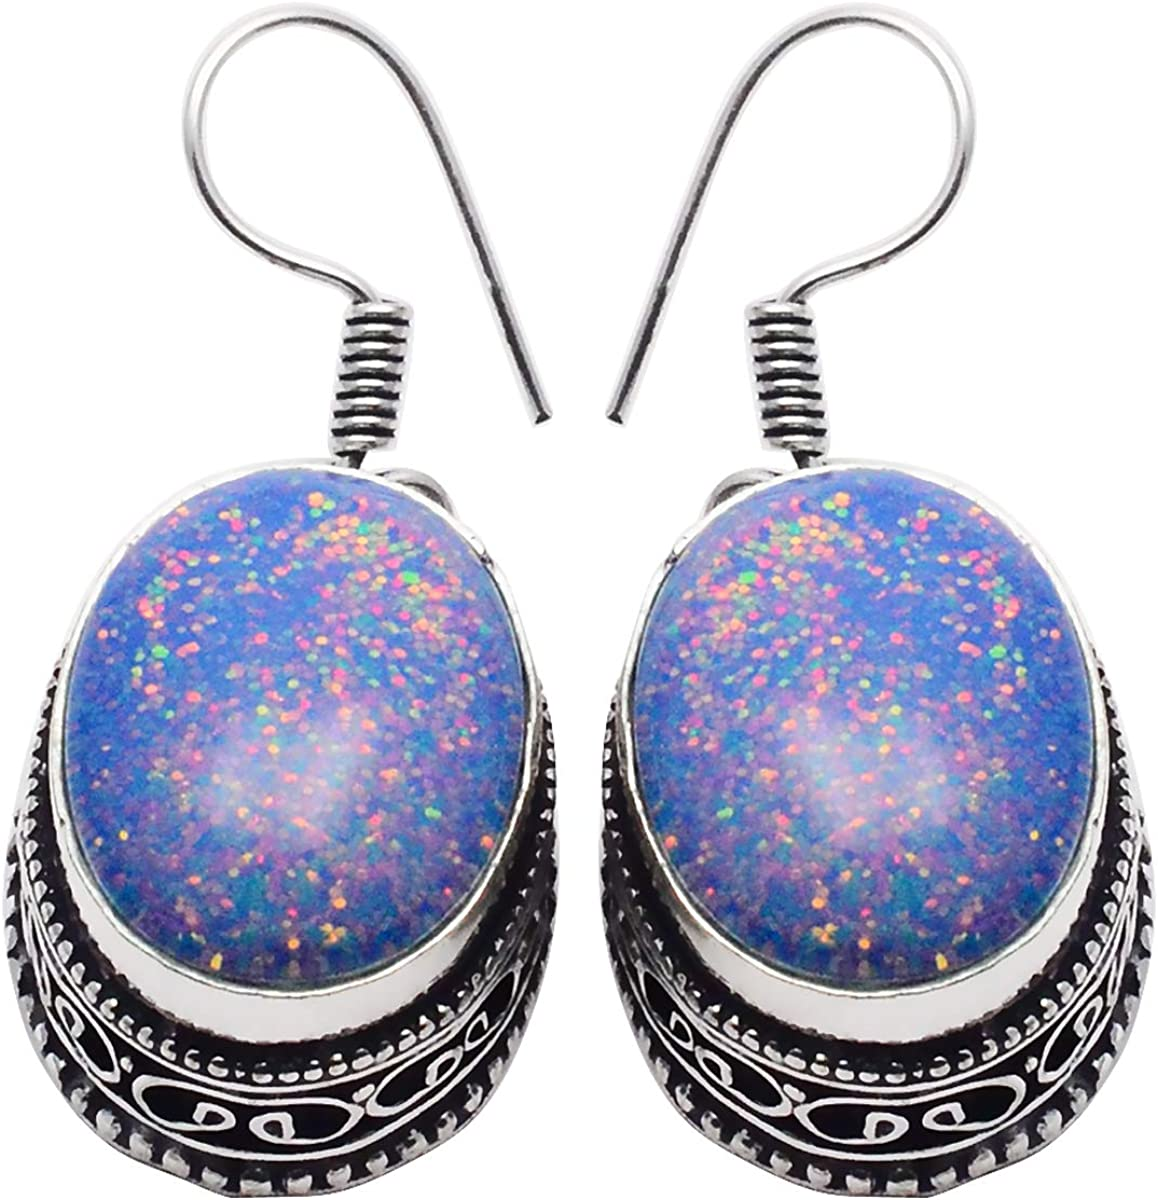 SilverArt Handmade Earring Turquoise 925 Sterling Silver Plated Jewelry for Womens and Girls